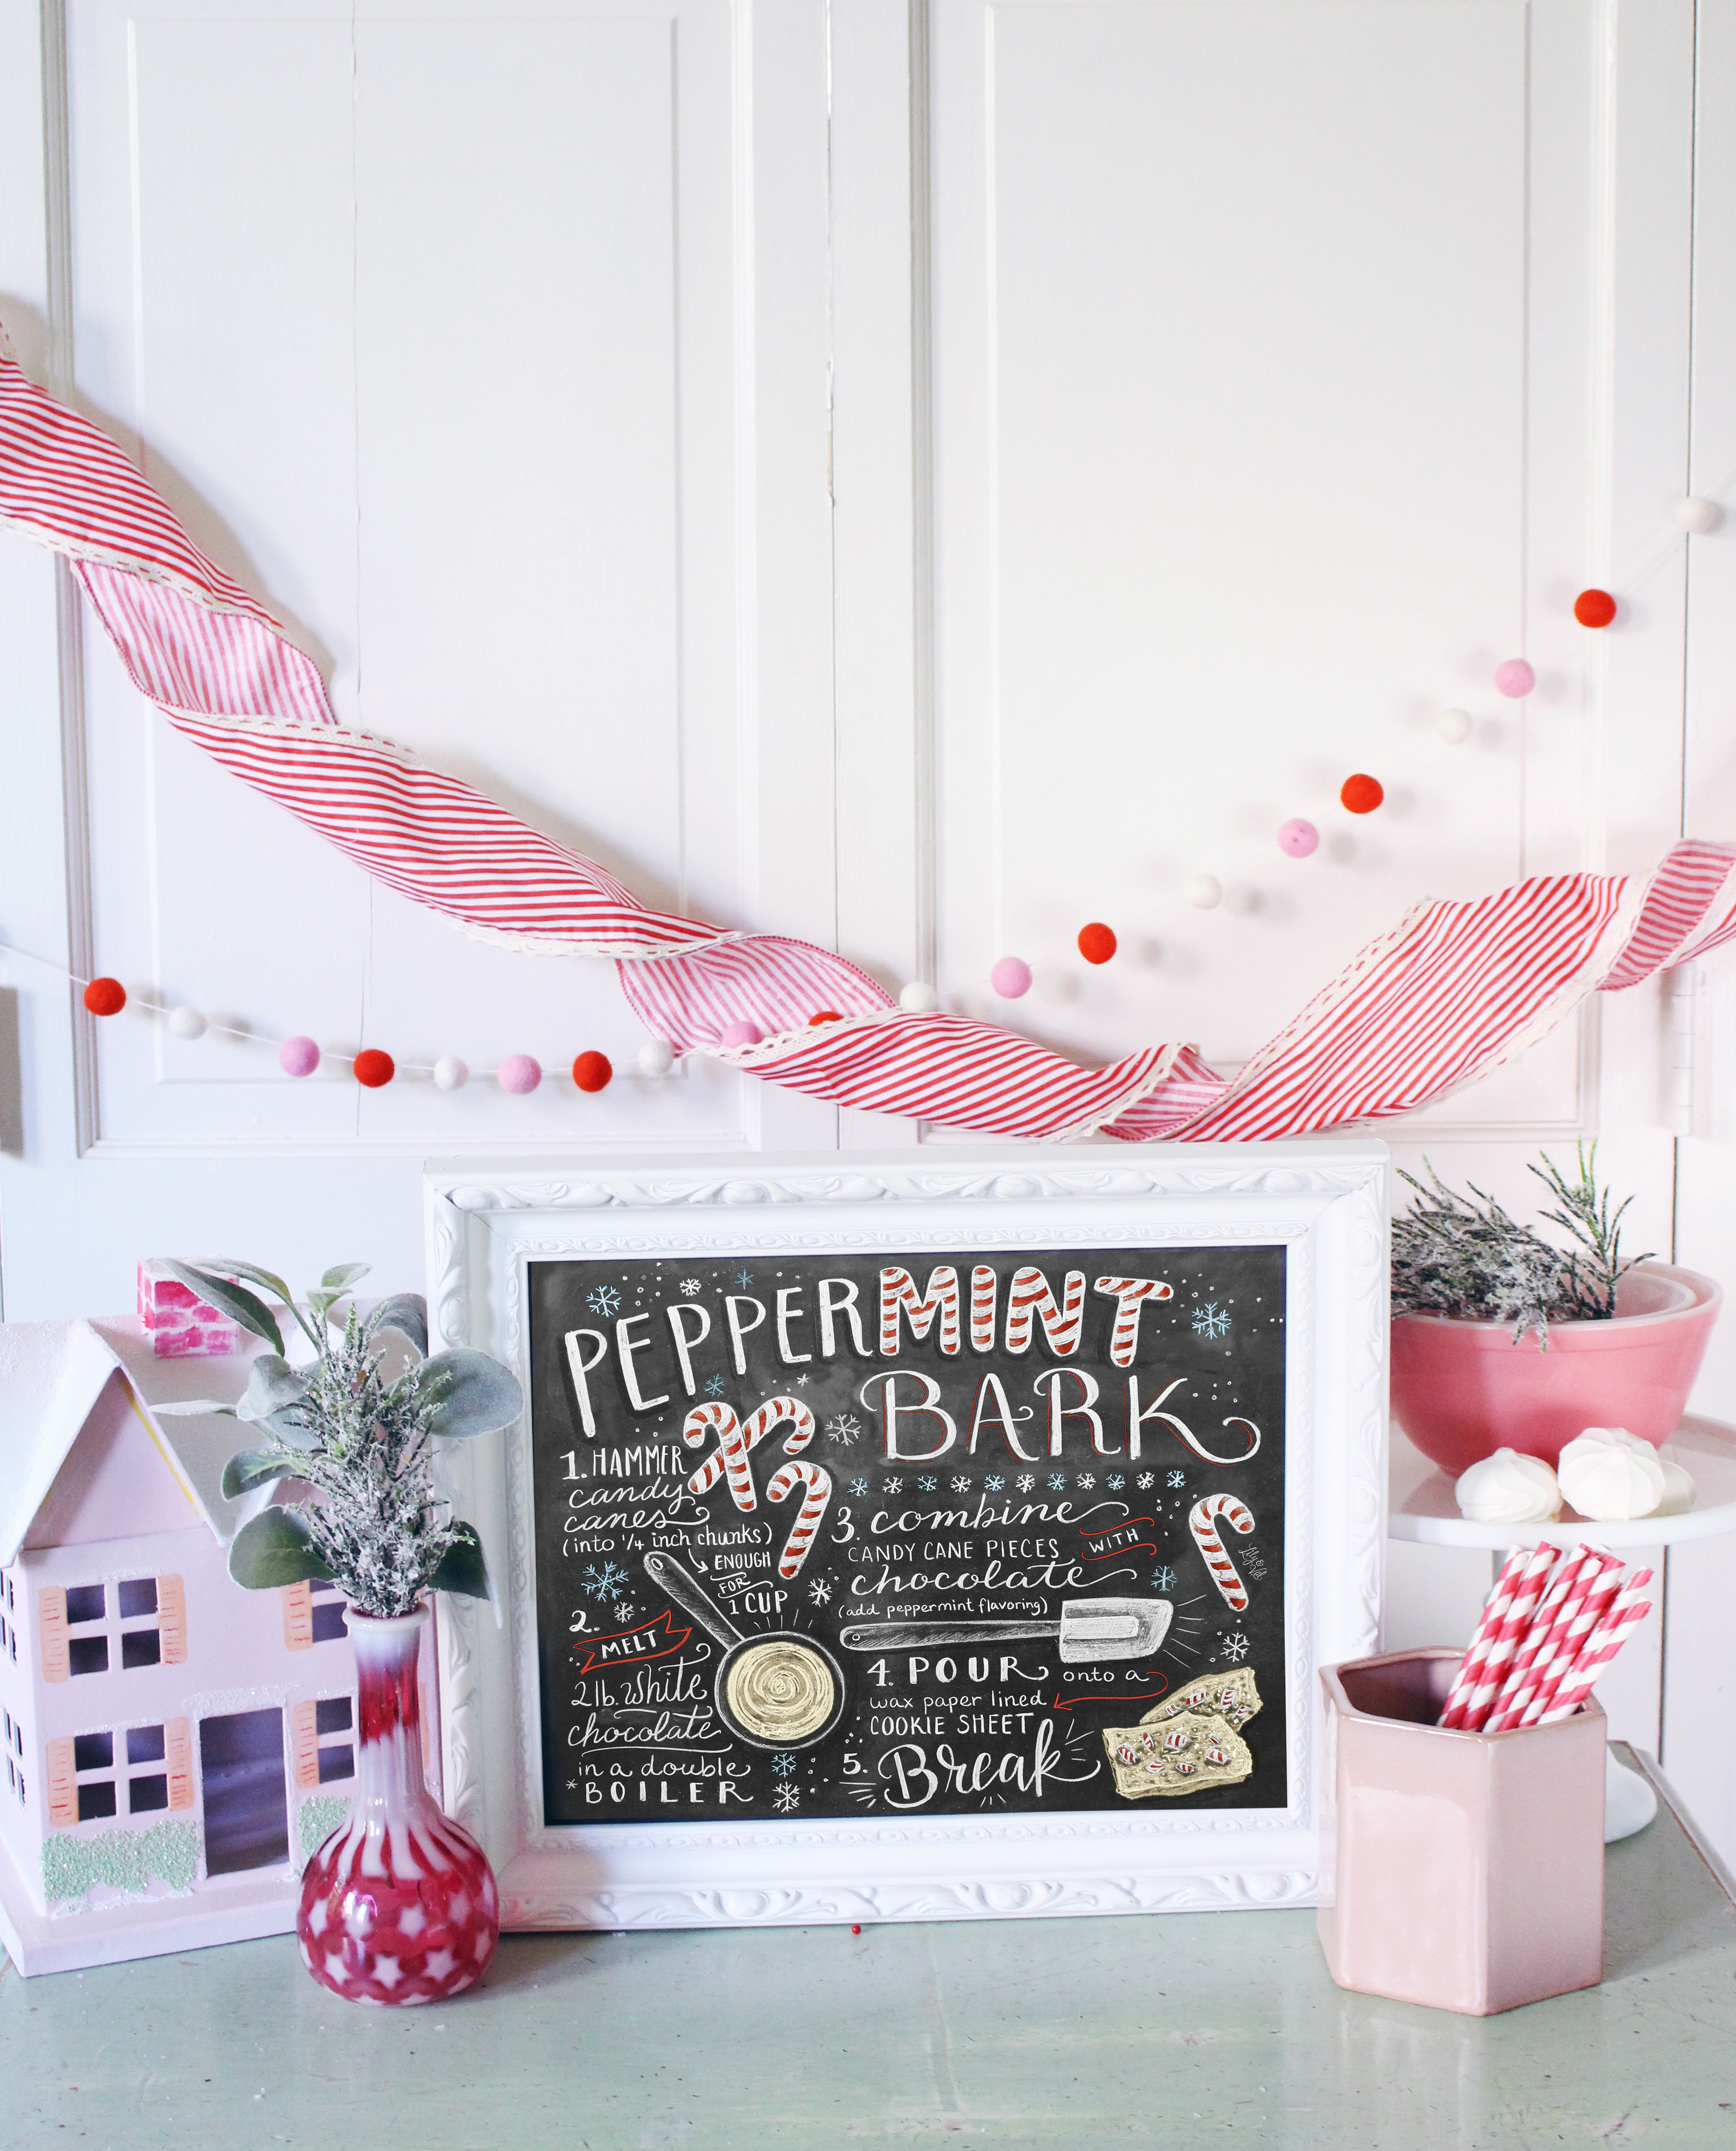 Peppermint Bark illustrated recipe by Lily & Val as part of the 2016 Marshamallow World Holiday Wall Art & Decor Collection